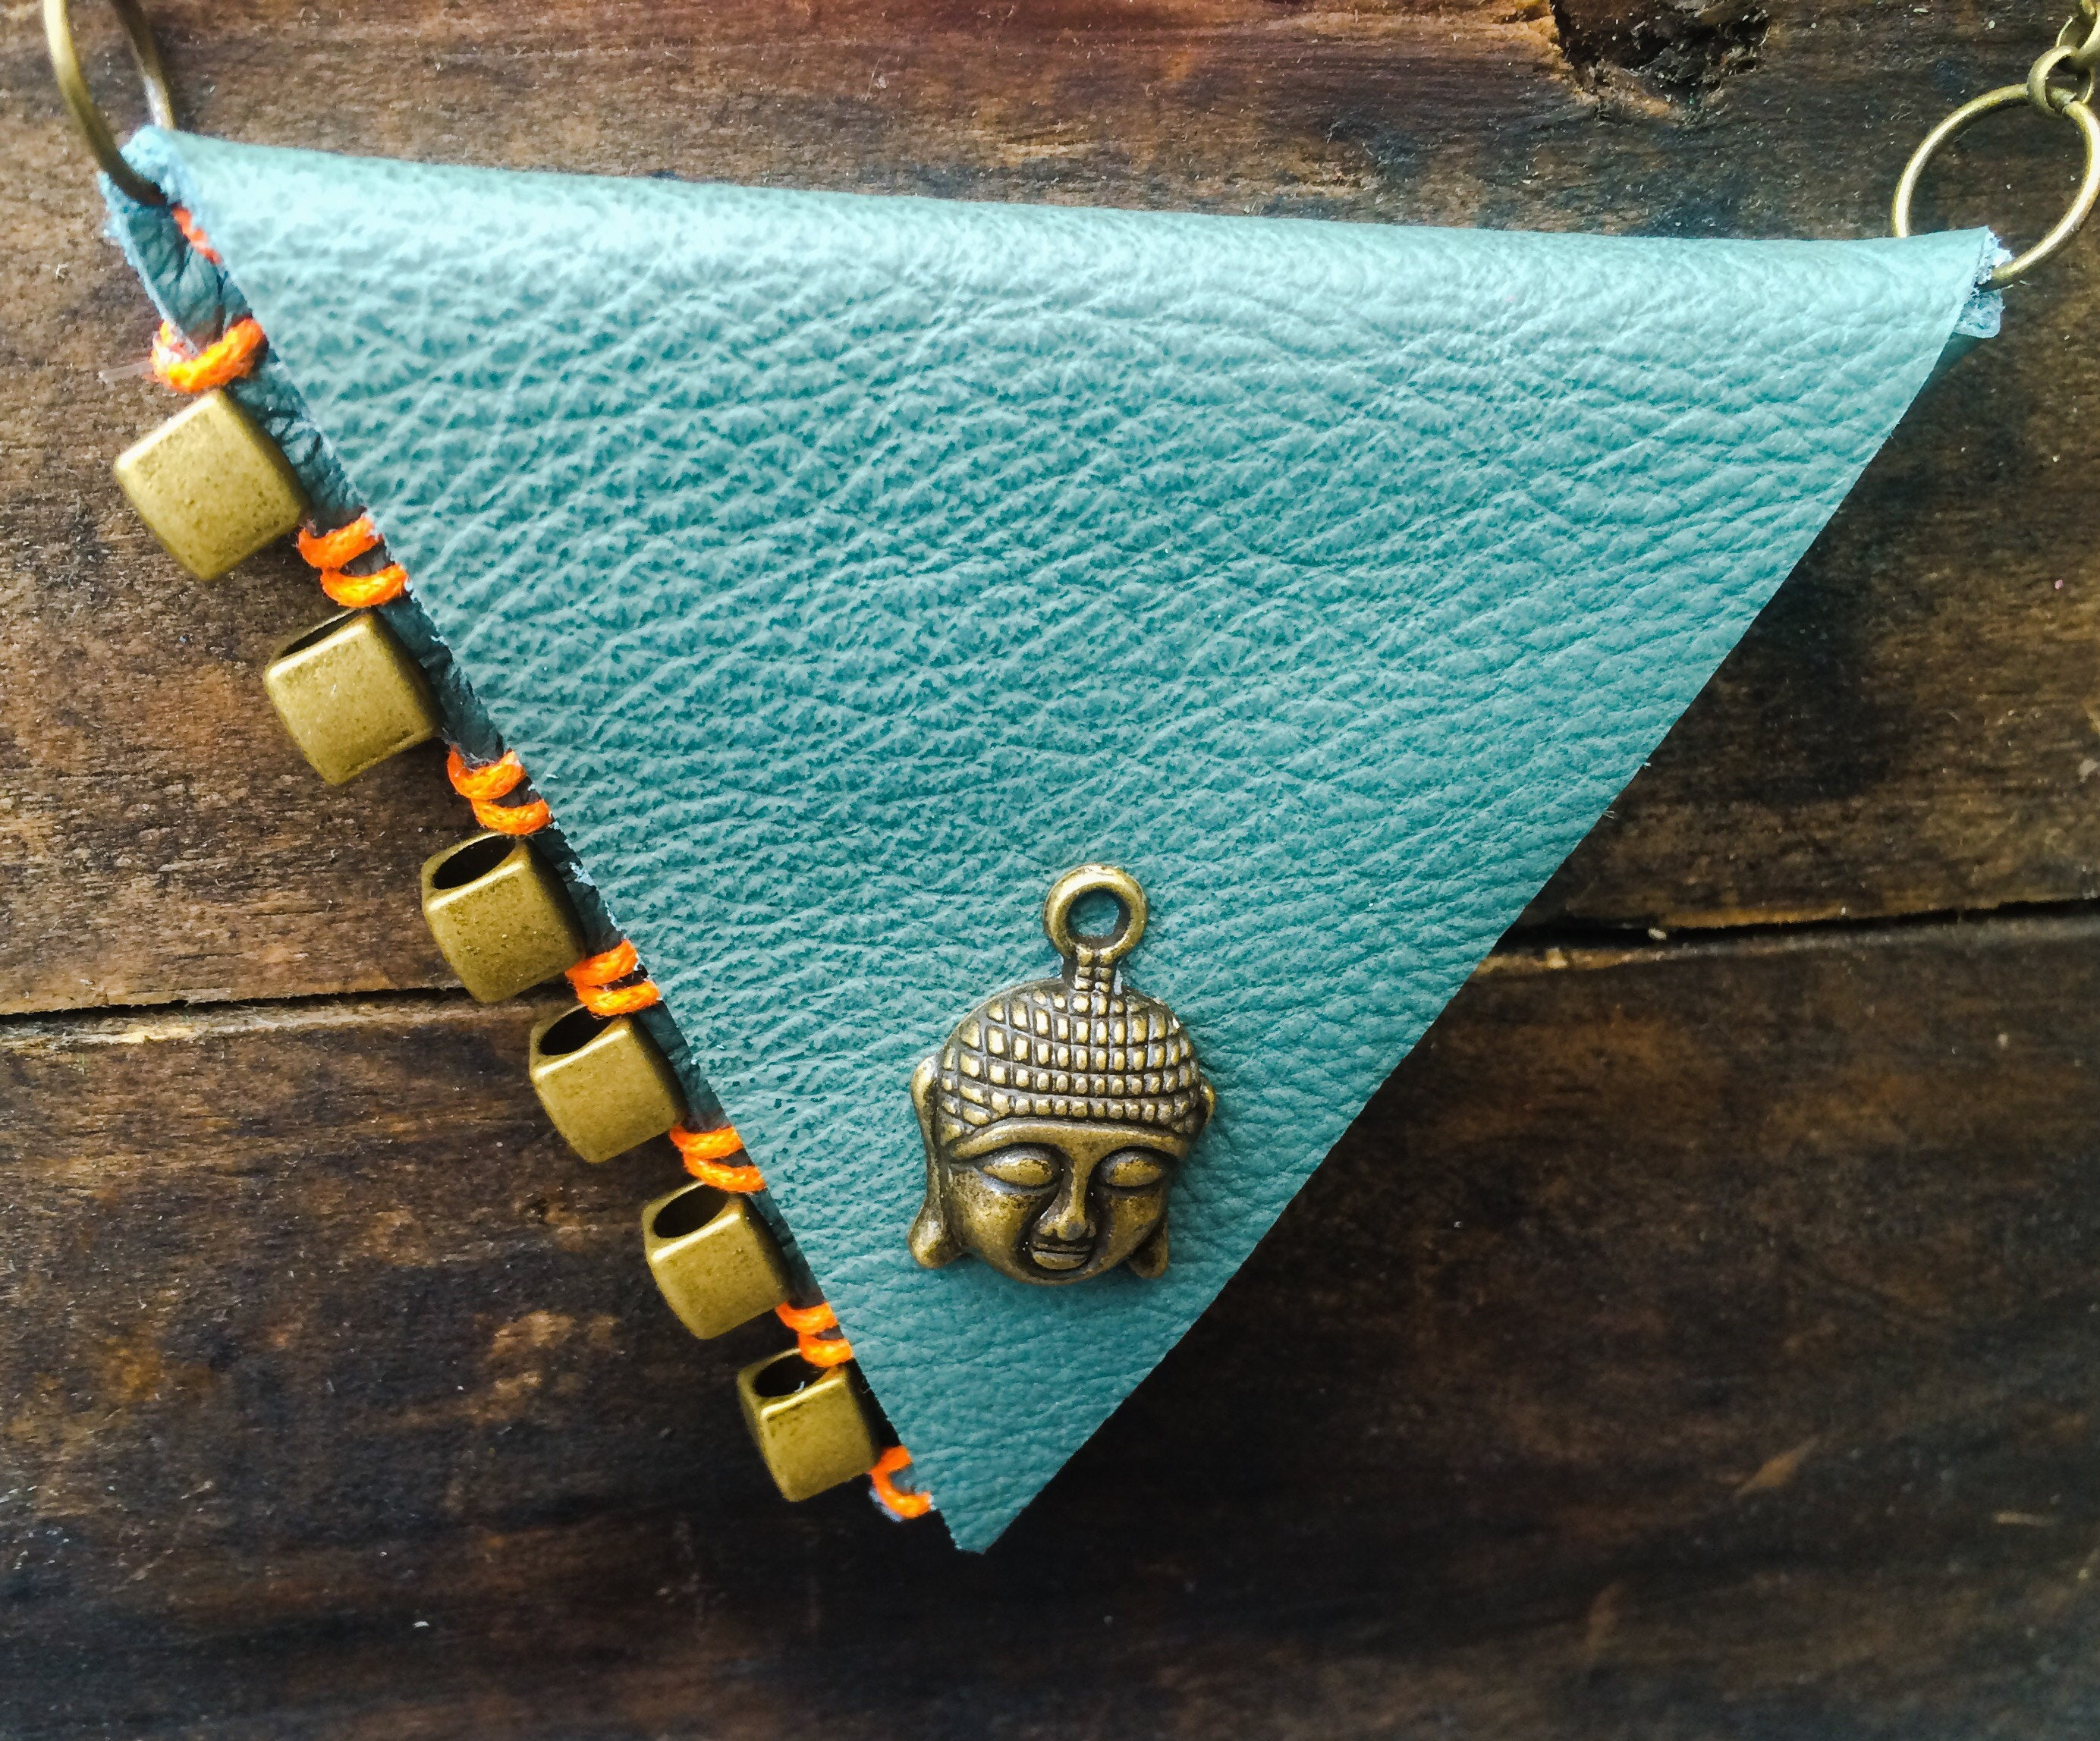 Leather Neck Wallet Buddha Purse Turquoise Purse Leather Neck Pouch Stash Necklace Spiritual Jewellery